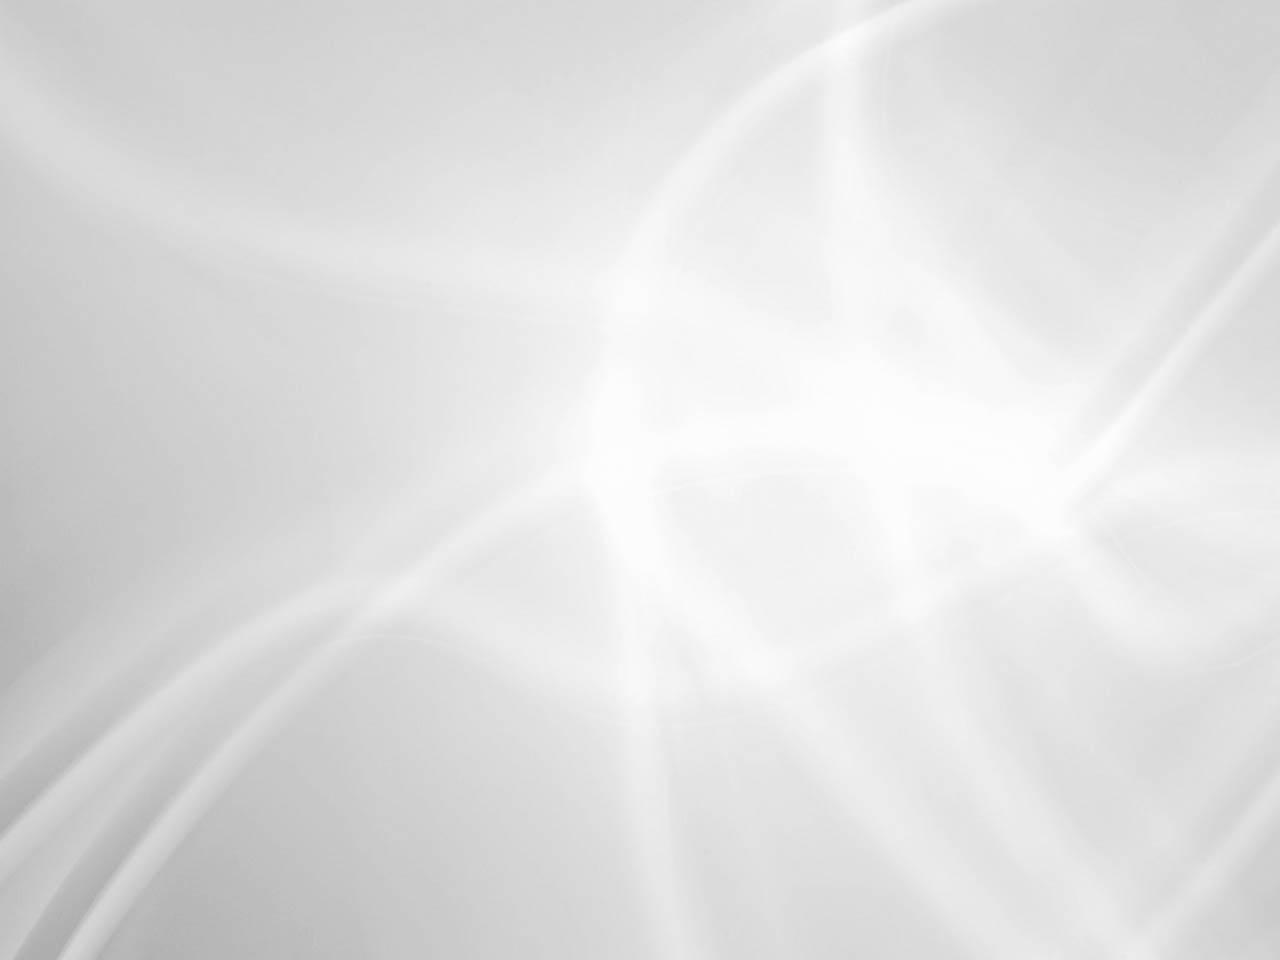 White abstract wallpaper hd download - White abstract background hd ...